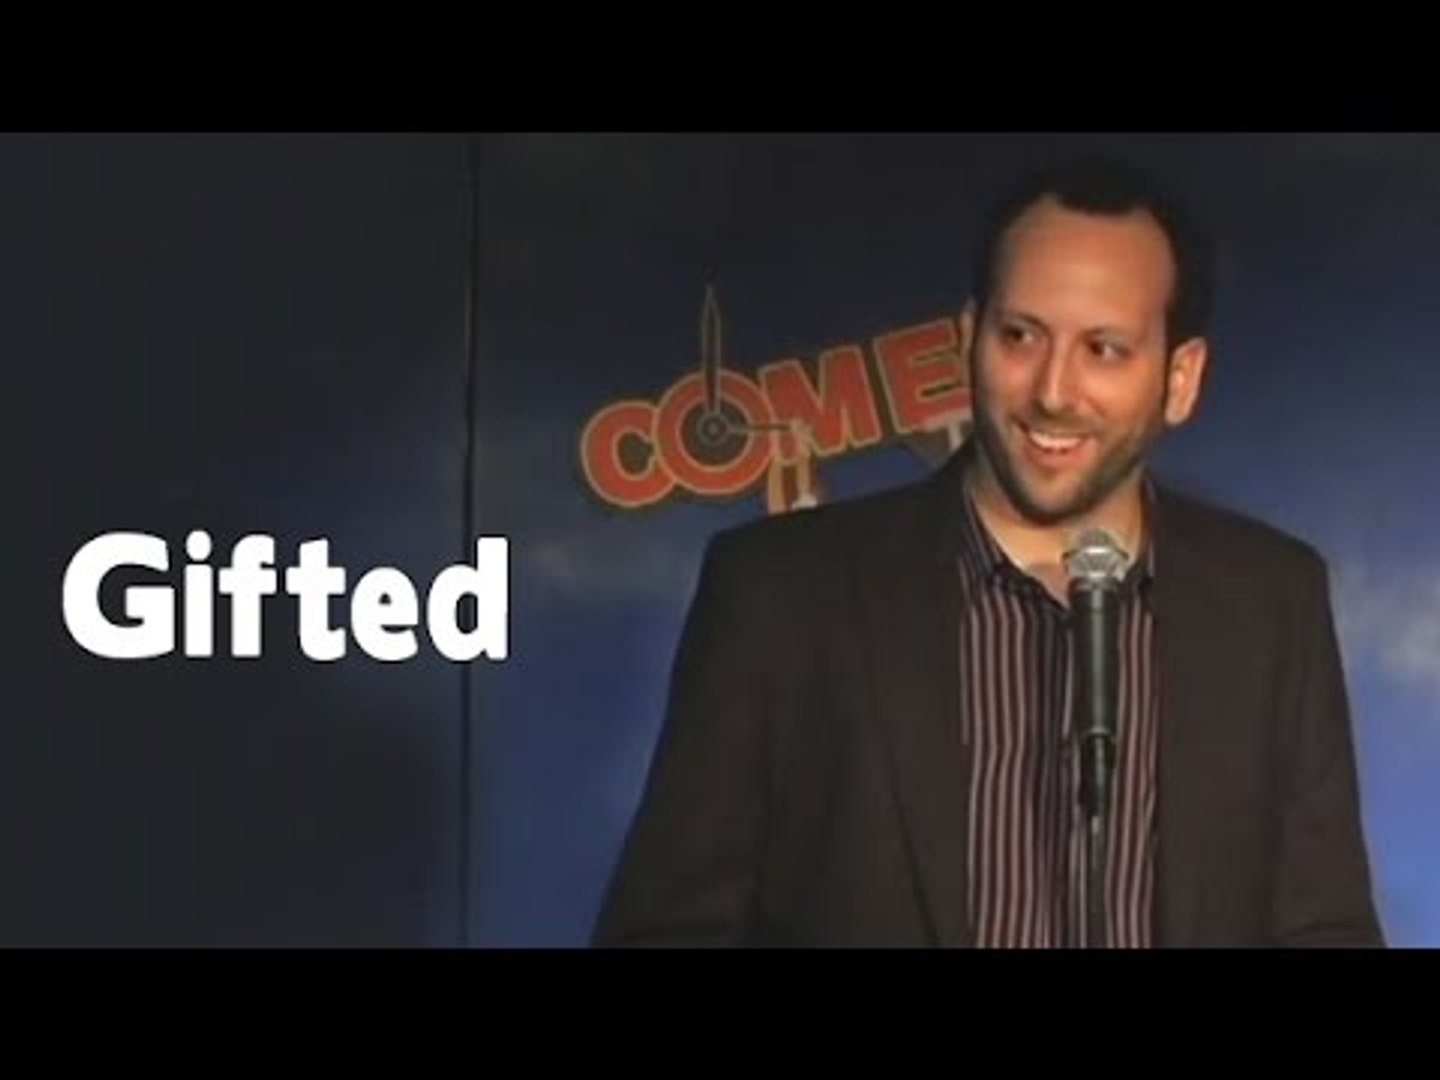 Gifted (Stand Up Comedy)